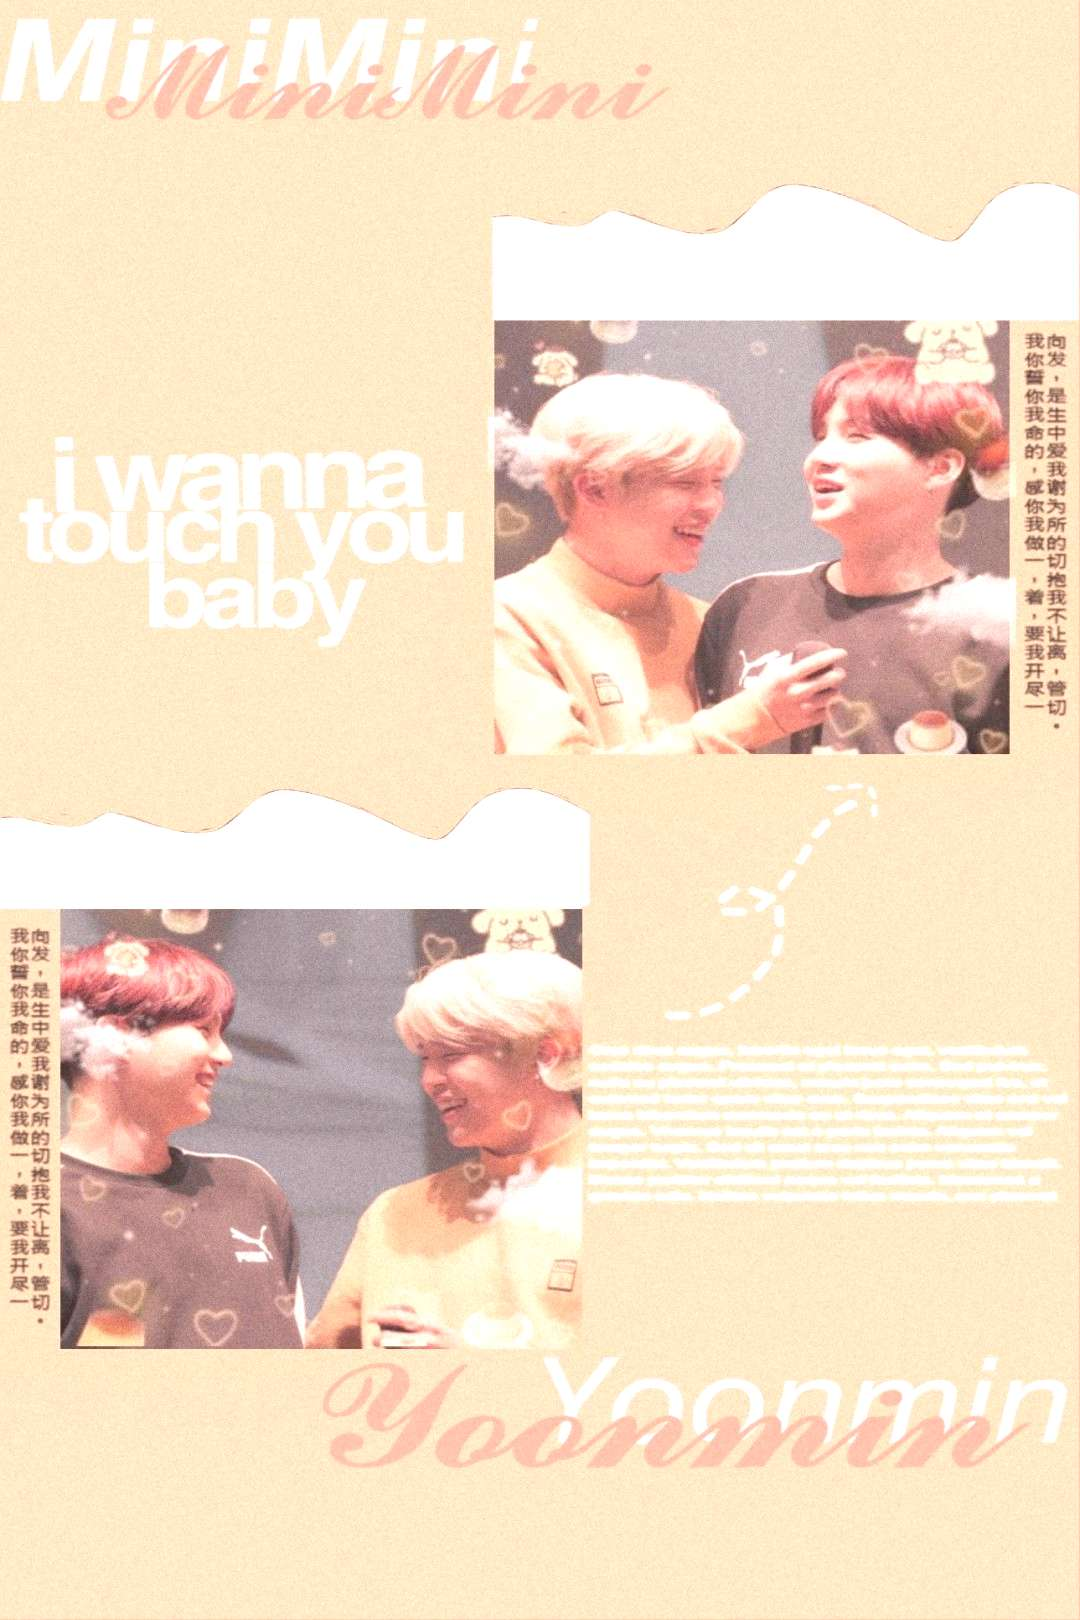 Yoonmin Bts | Wallpaper aesthetic.